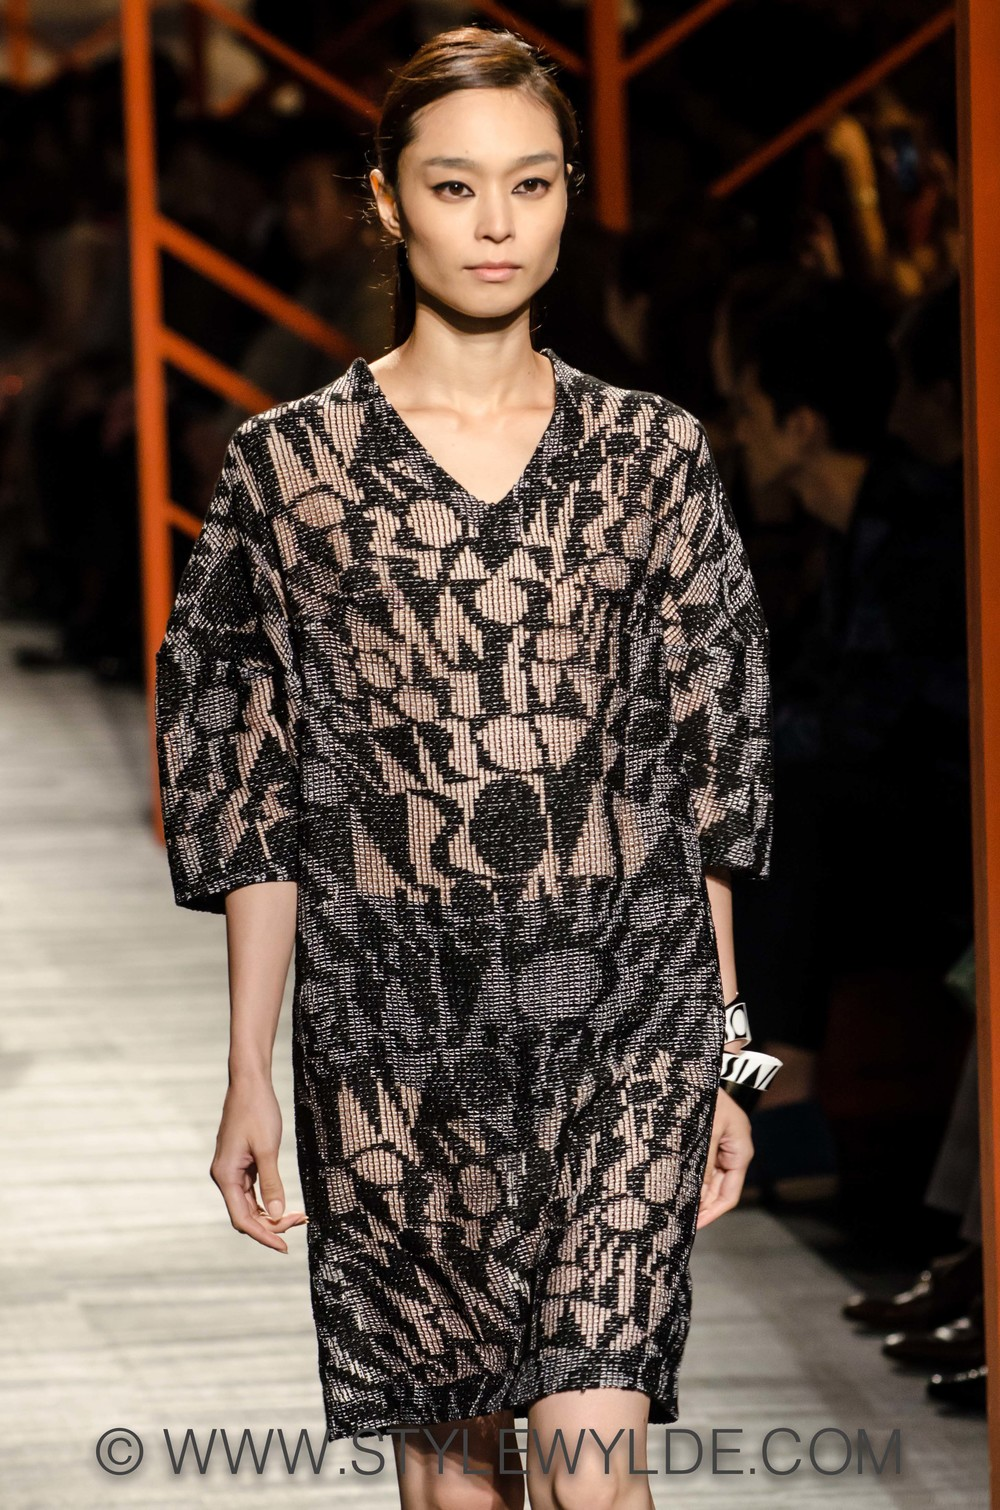 STYLEWYLDE_Missoni_SS2014 (1 of 1)-6.jpg